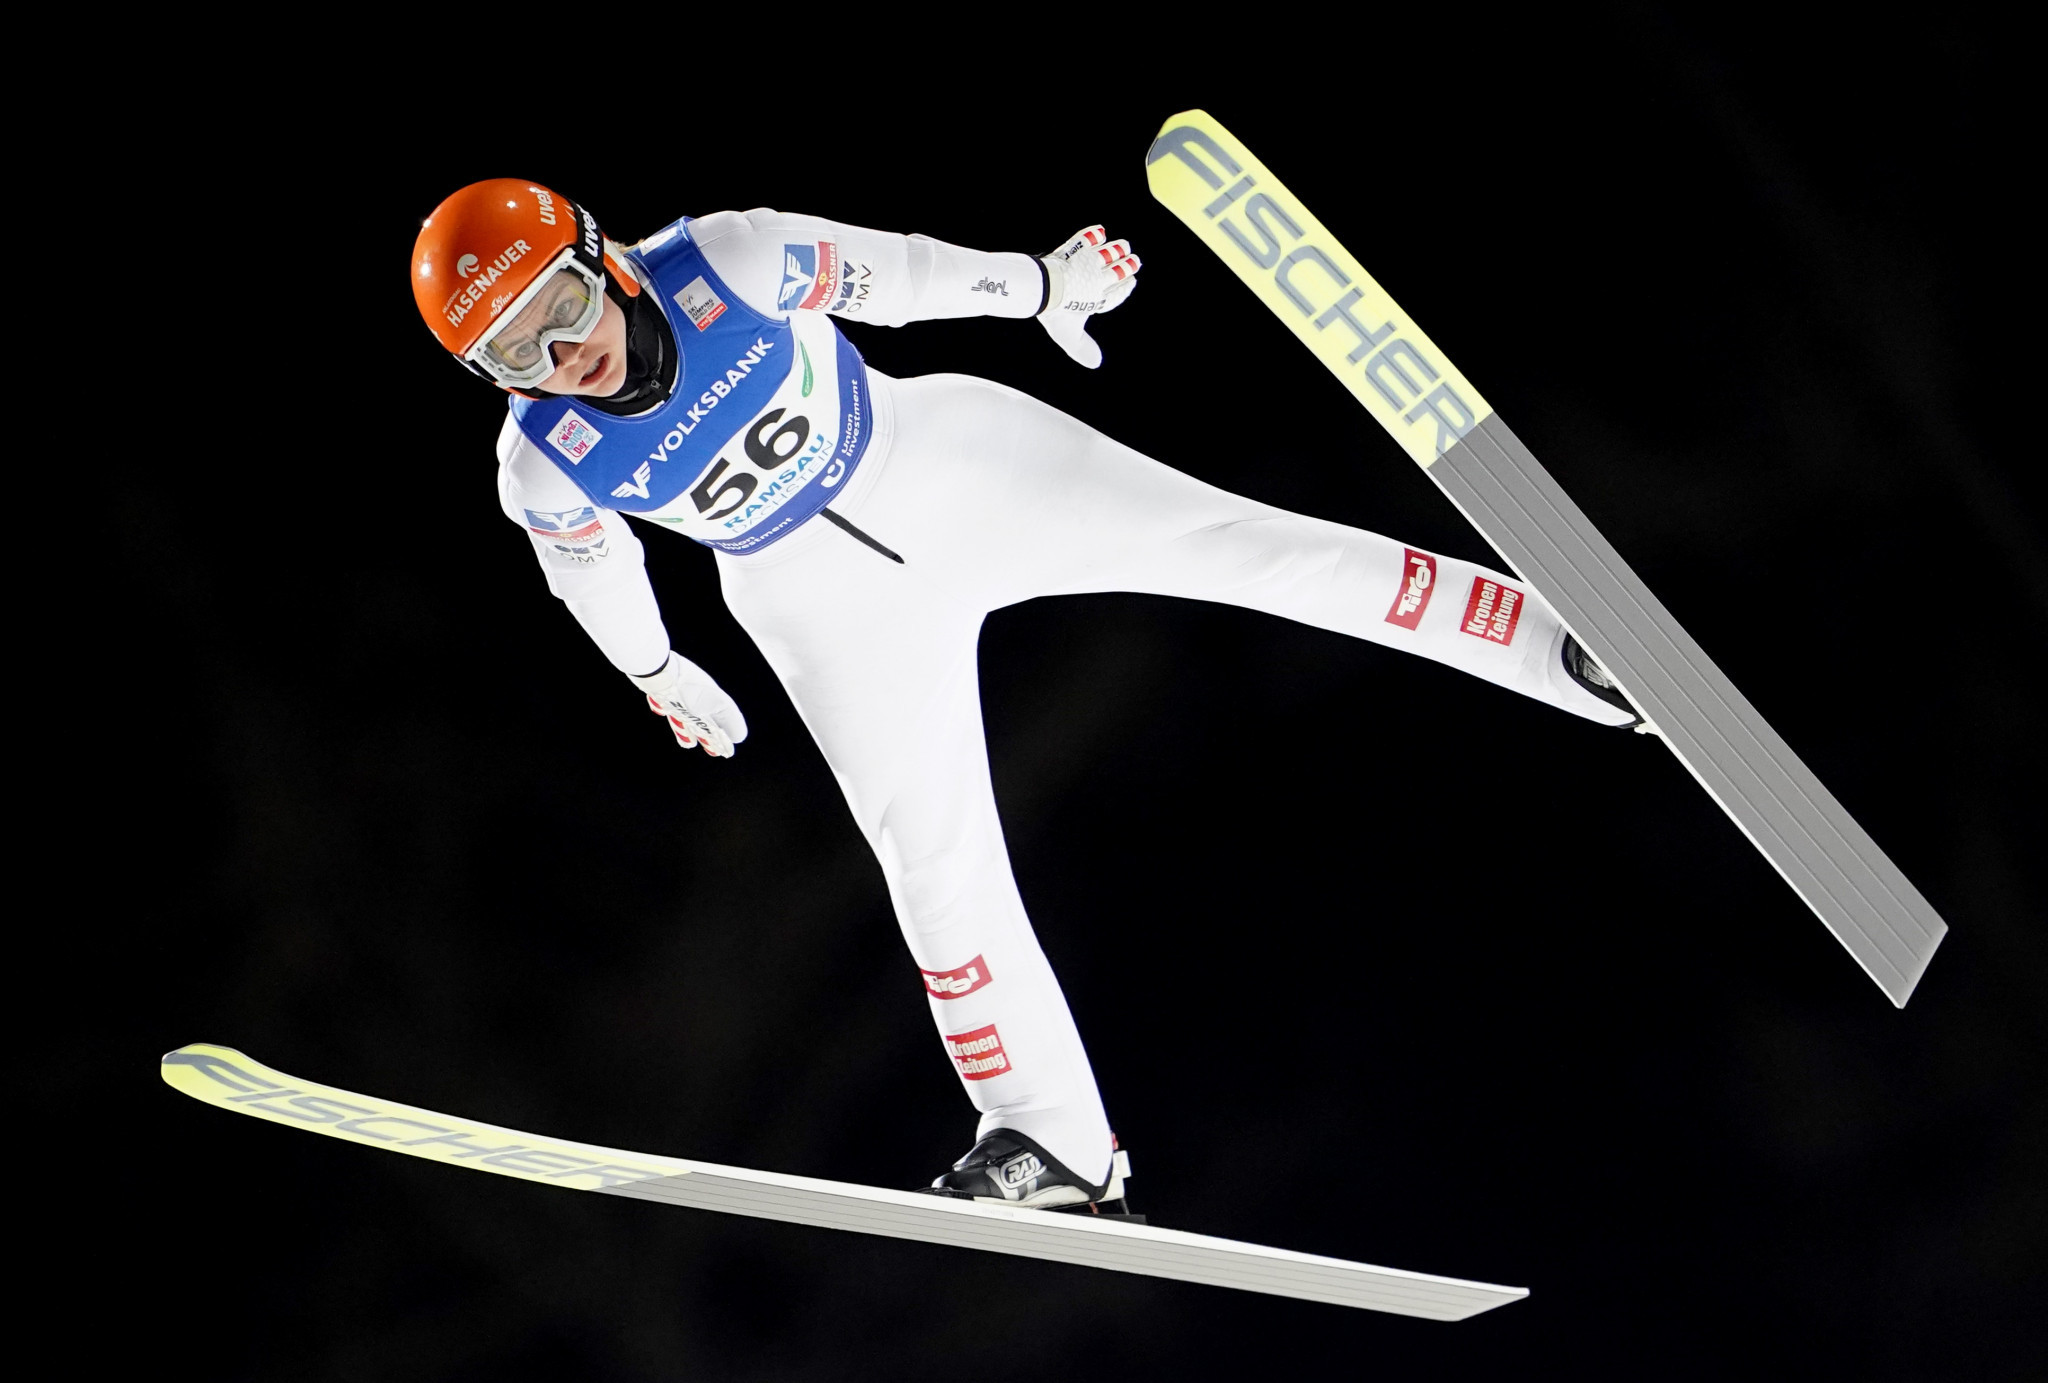 Kramer victorious again at Titisee-Neustadt Ski Jumping World Cup